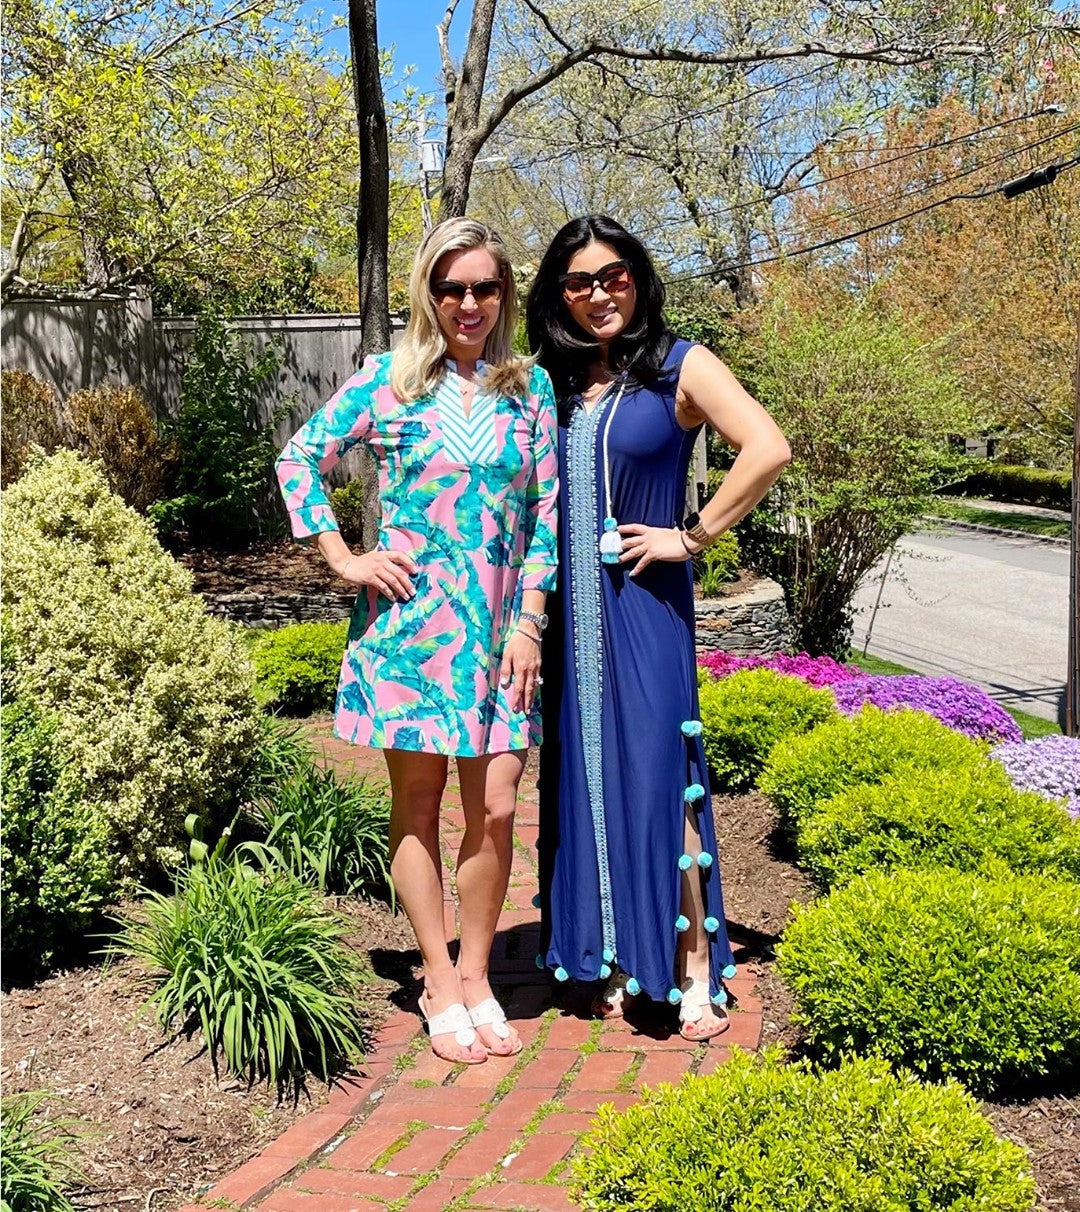 Two women standing in Garden wearing Cabana Life Preppy Palm Tunic Dress and Aruba Blues Embroidered Maxi Dress